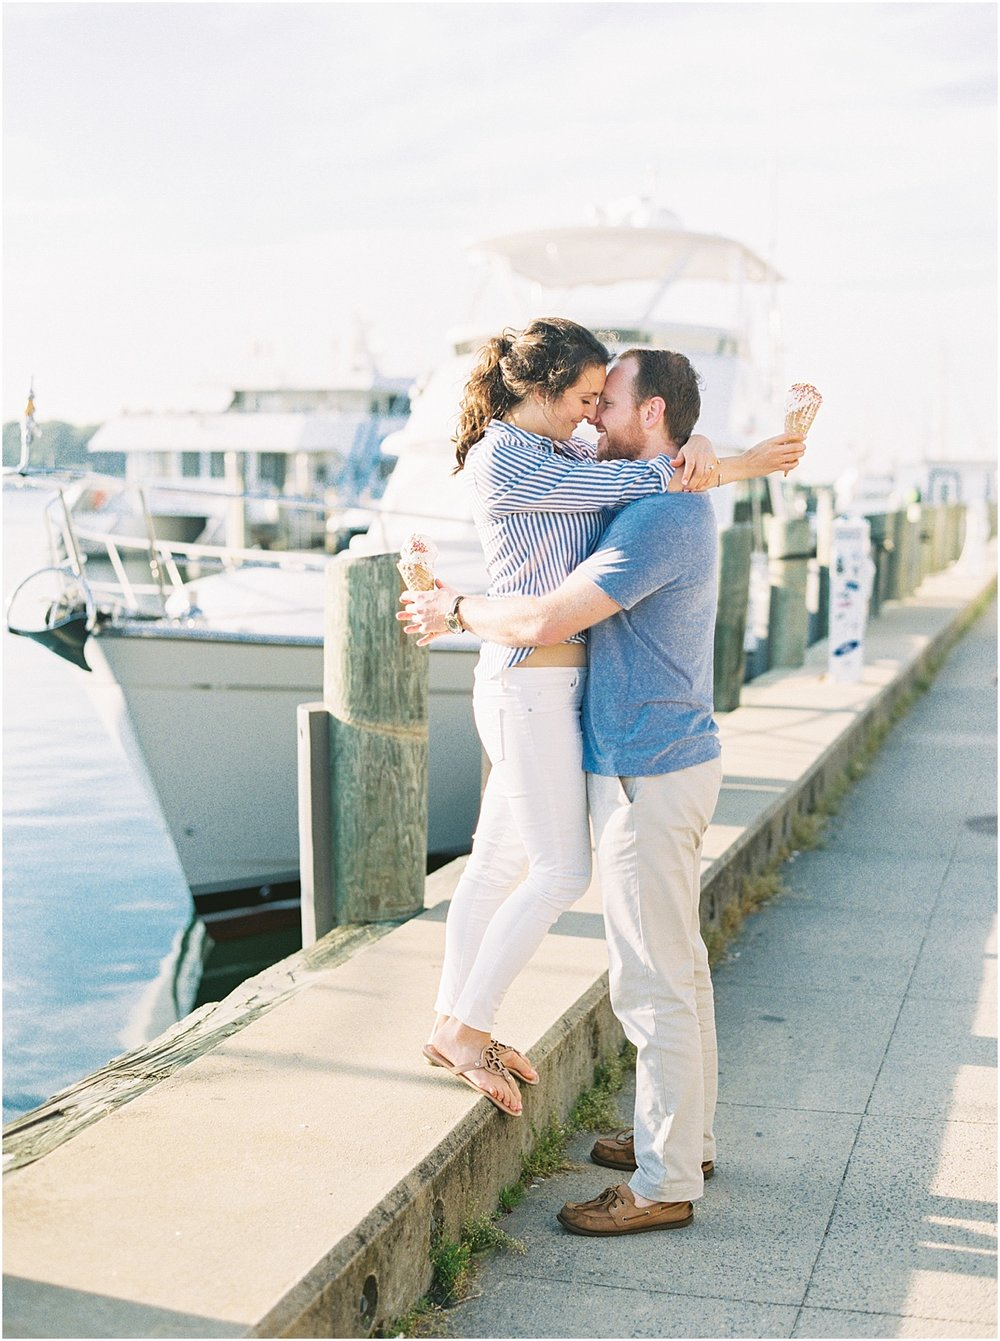 love_and_light_photographs_meredith_chris_engagement_martha_vineyard_marthas_nancys_cape_cod_boston_wedding_photographer_meredith_jane_photography_photo_0434.jpg